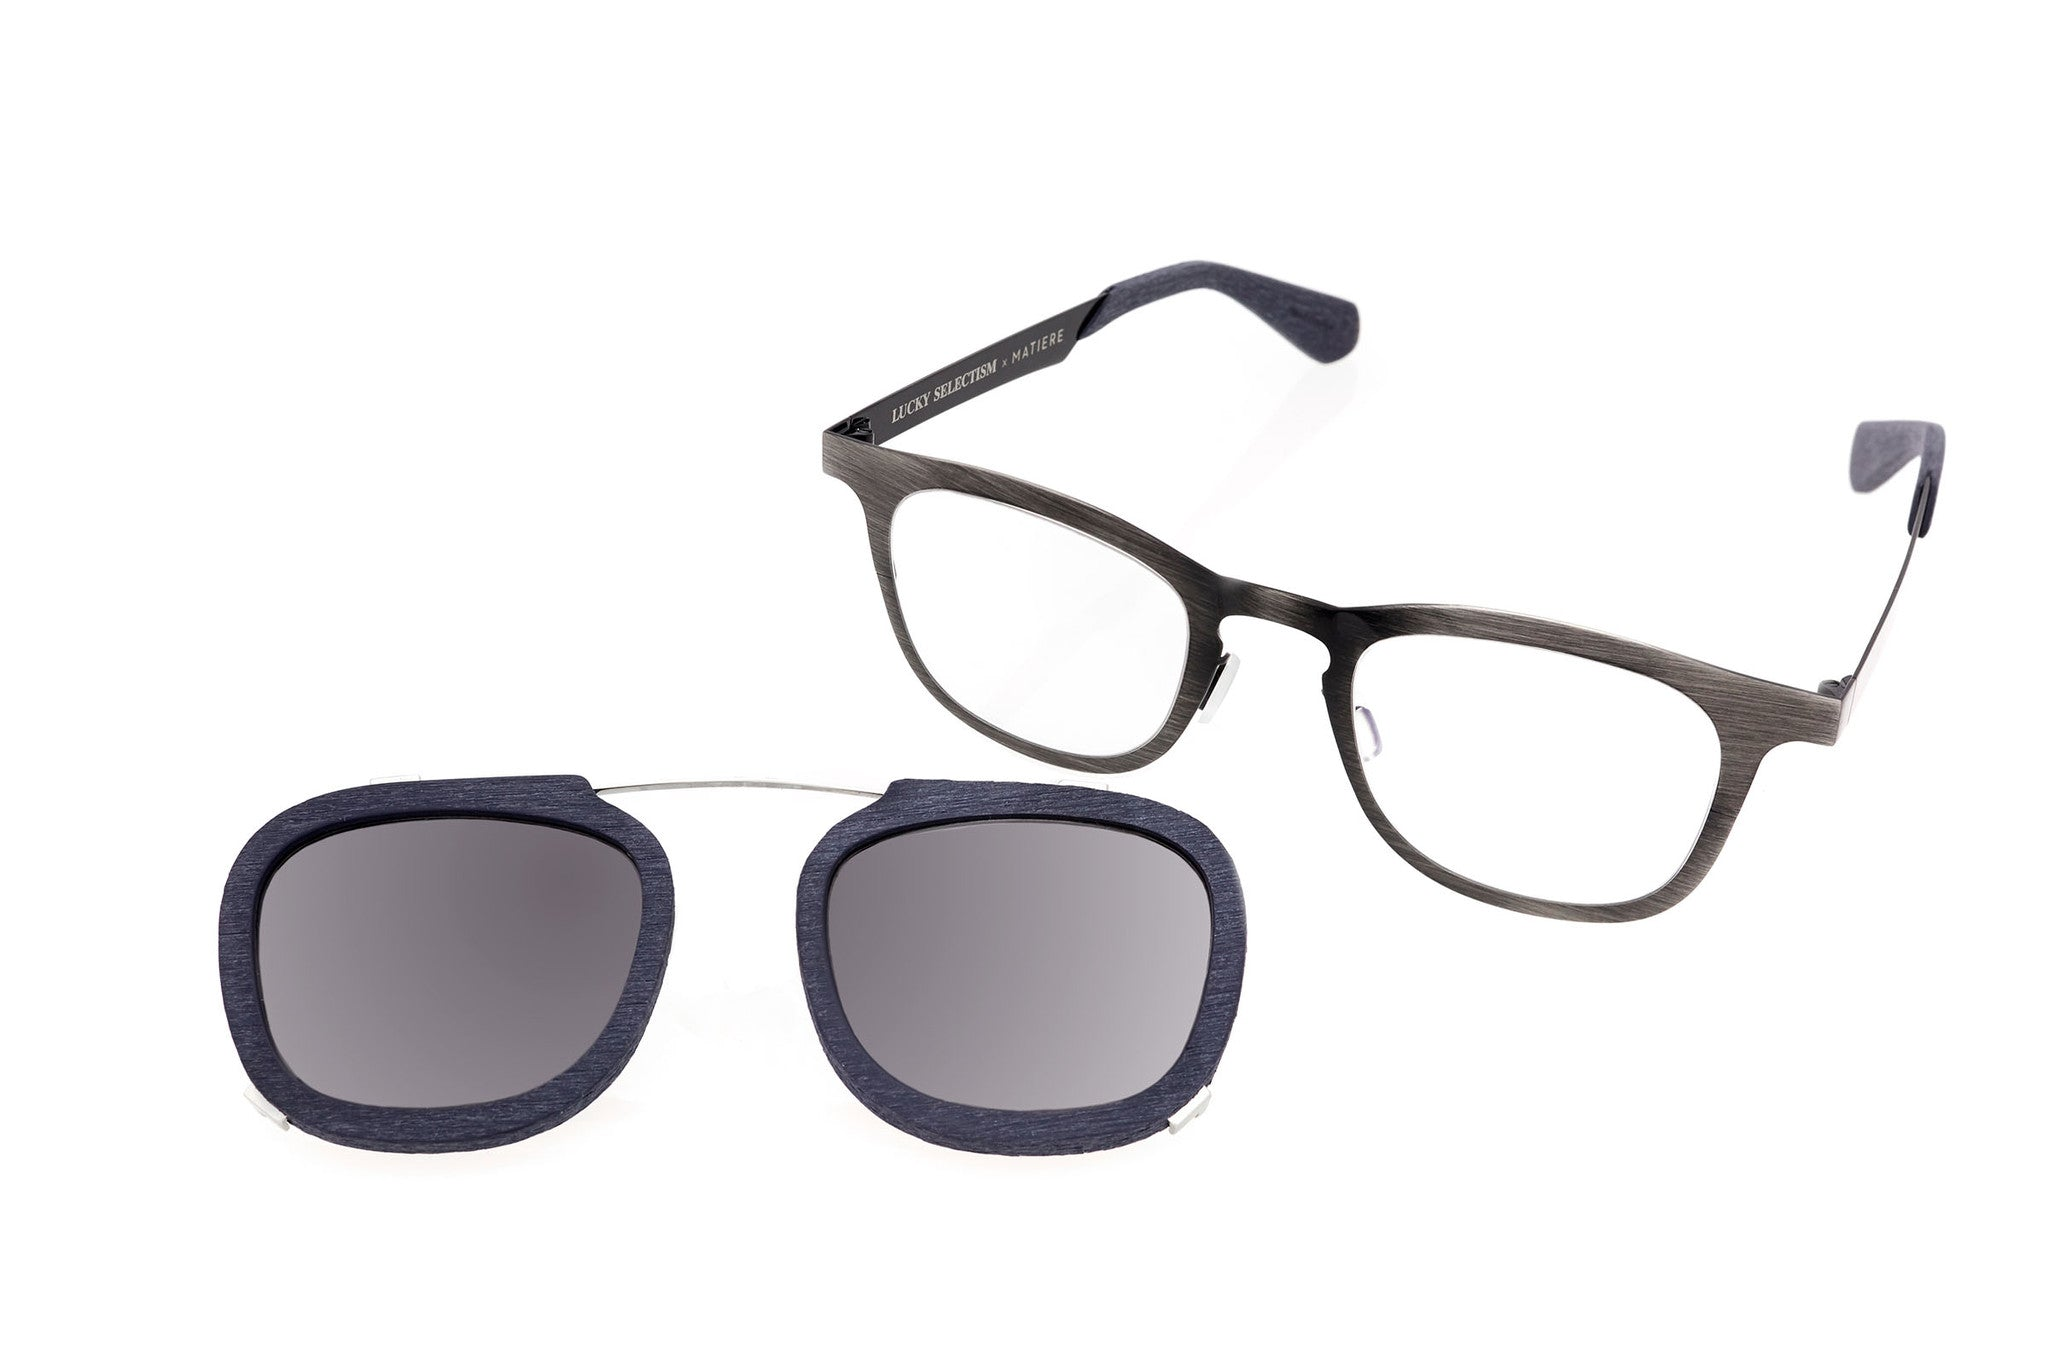 FRANCO - GLASSES - OMBRE NAVY